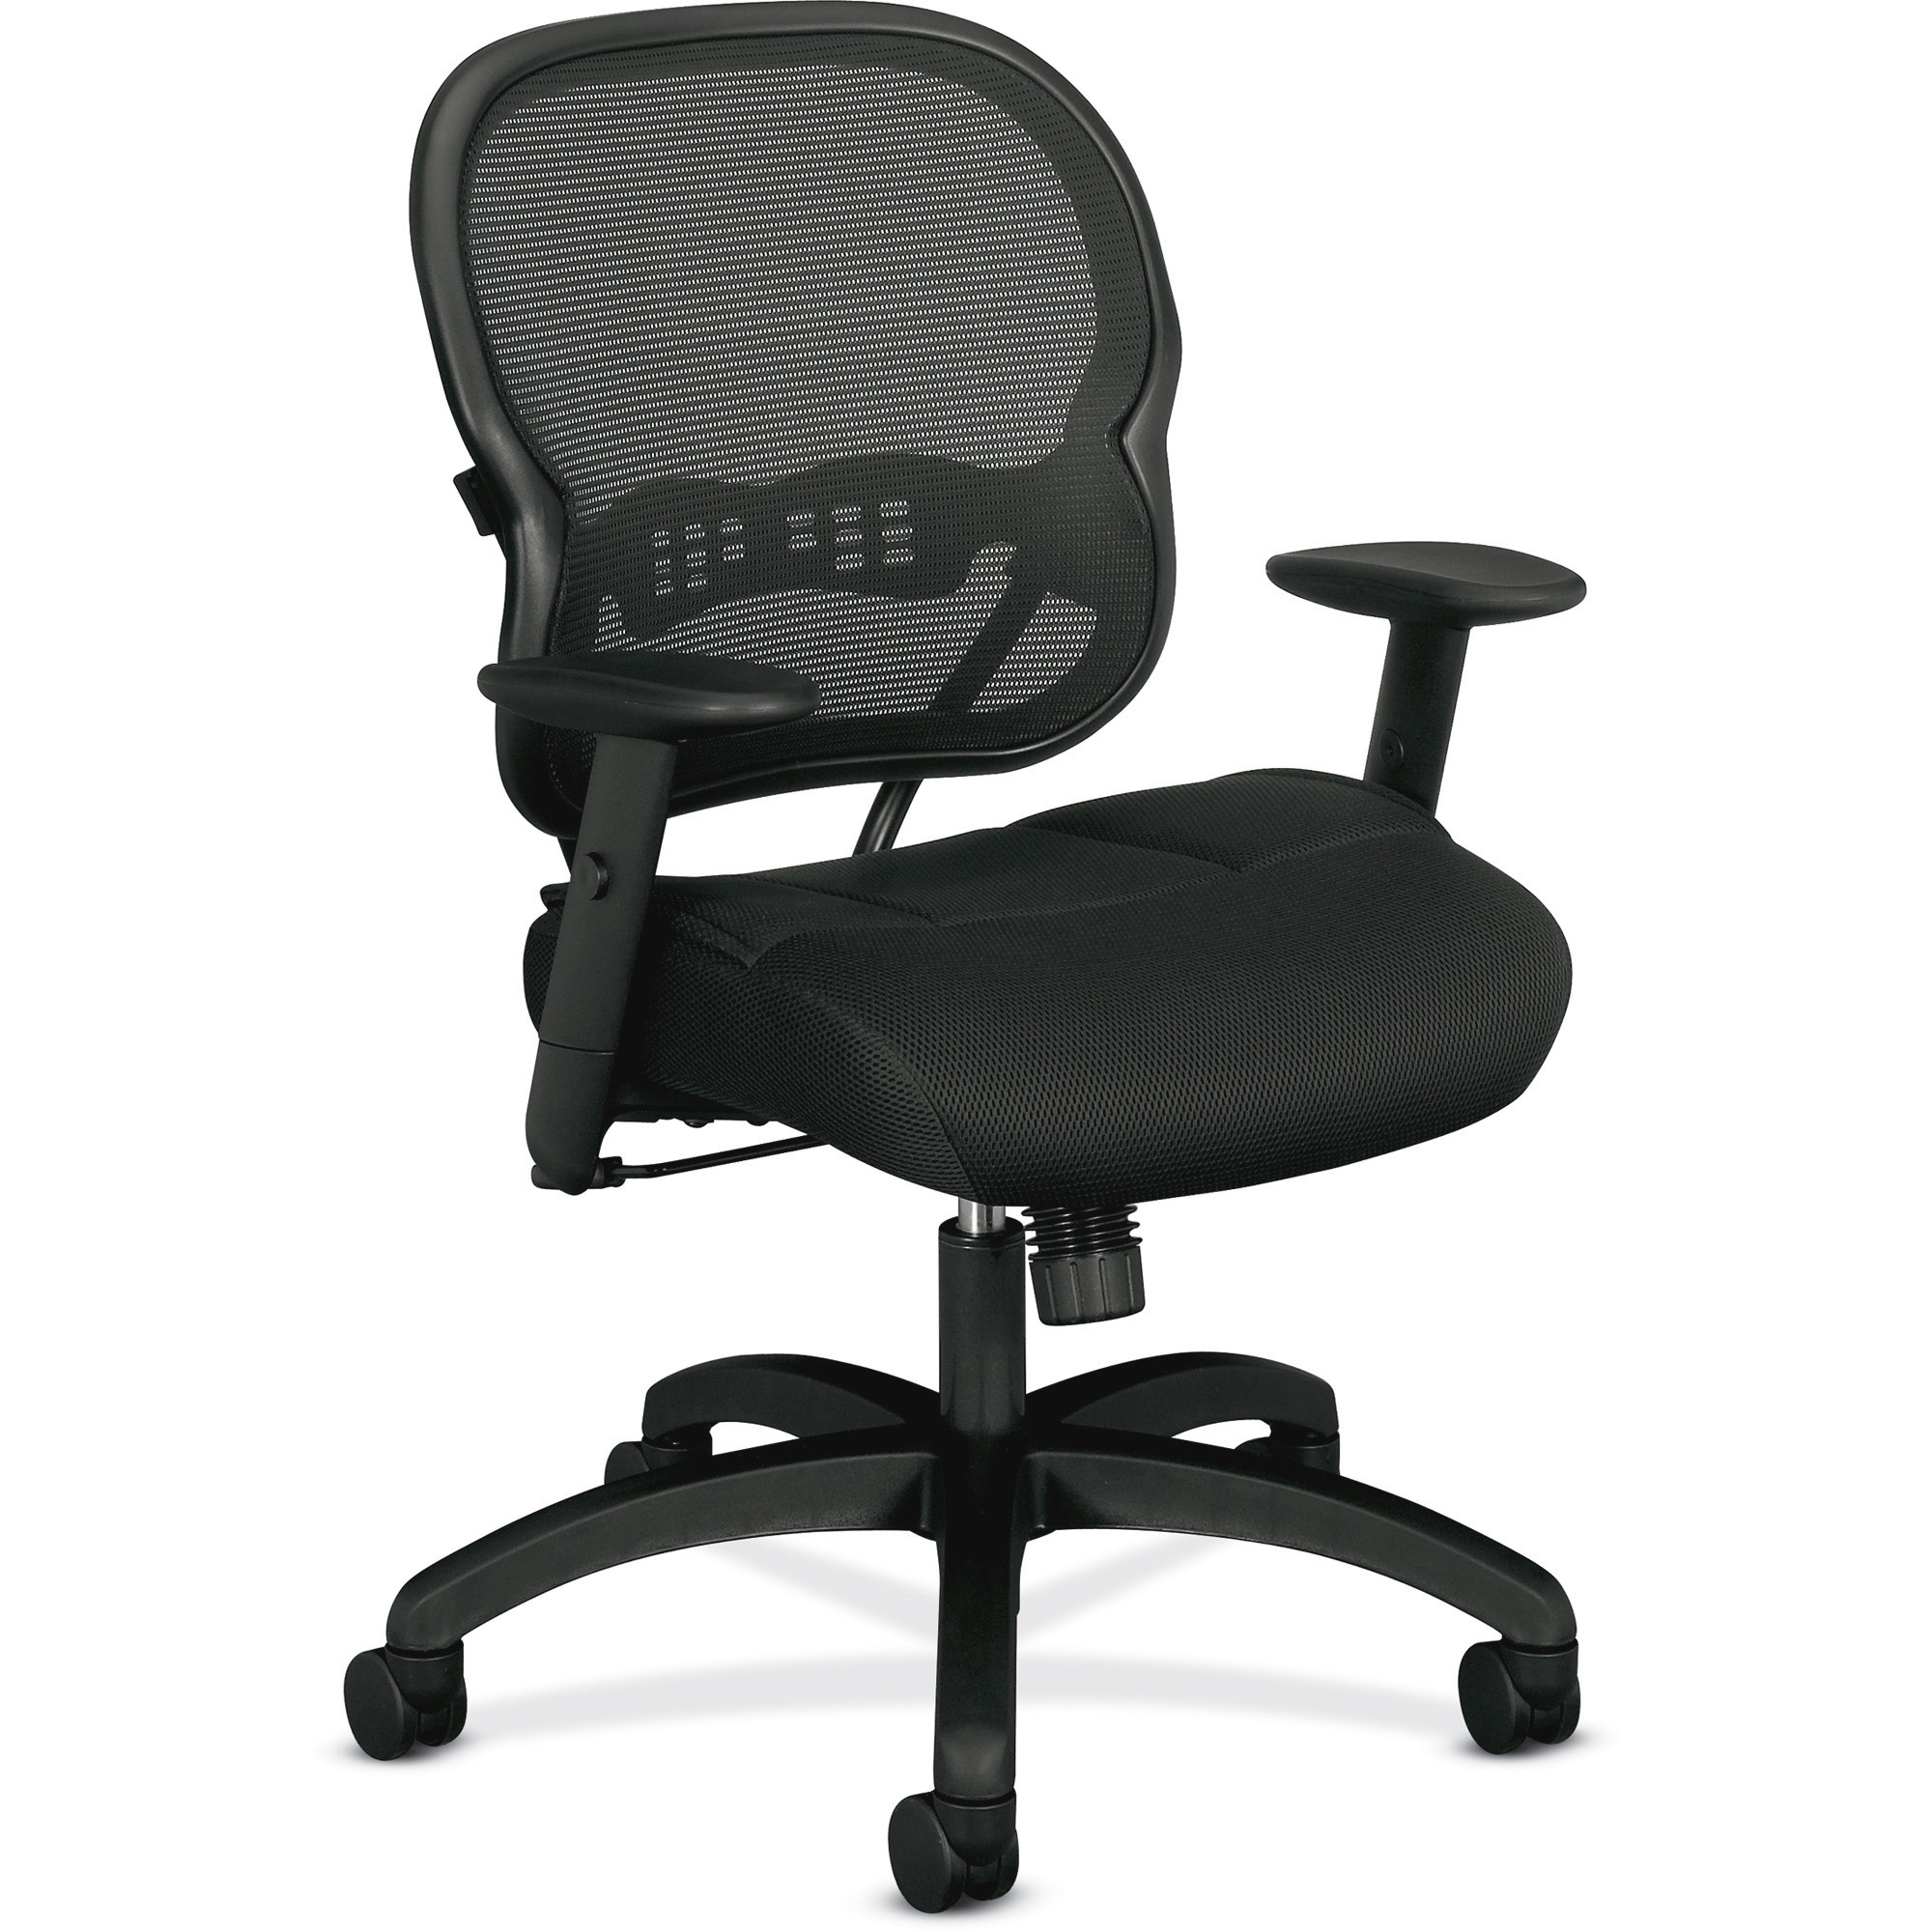 basyx VL712 Series Mid-Back Swivel/Tilt Work Chair, Black Mesh